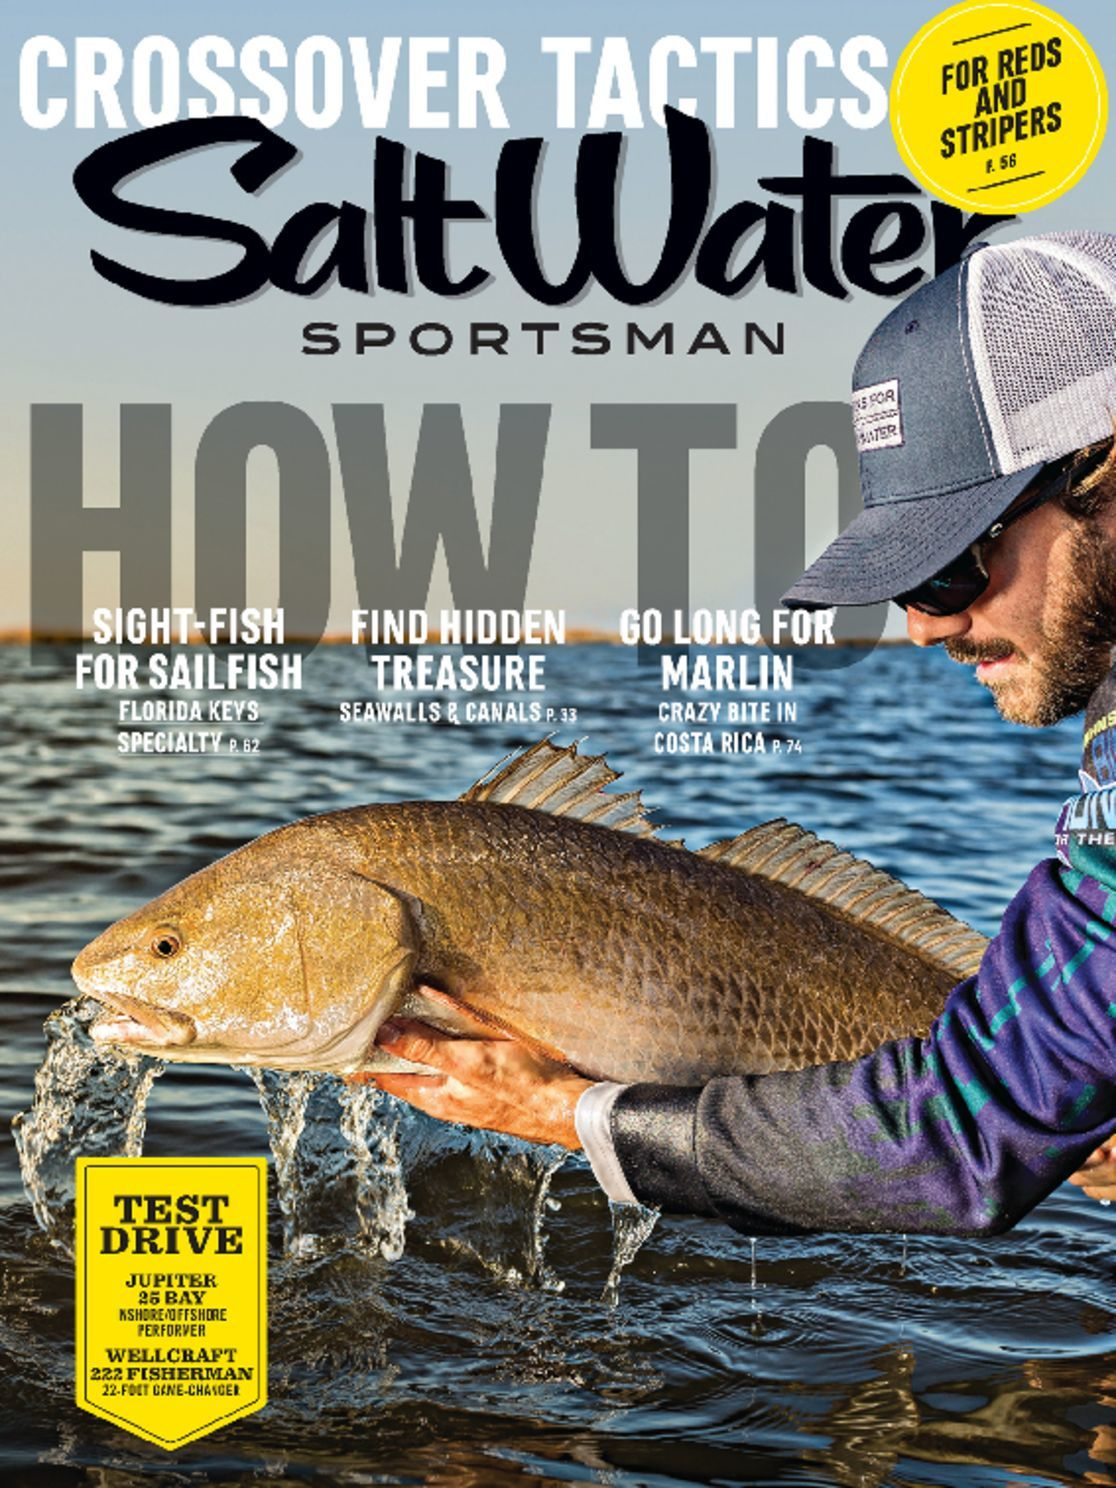 Salt water sportsman magazine a guide to saltwater for Saltwater fishing magazines